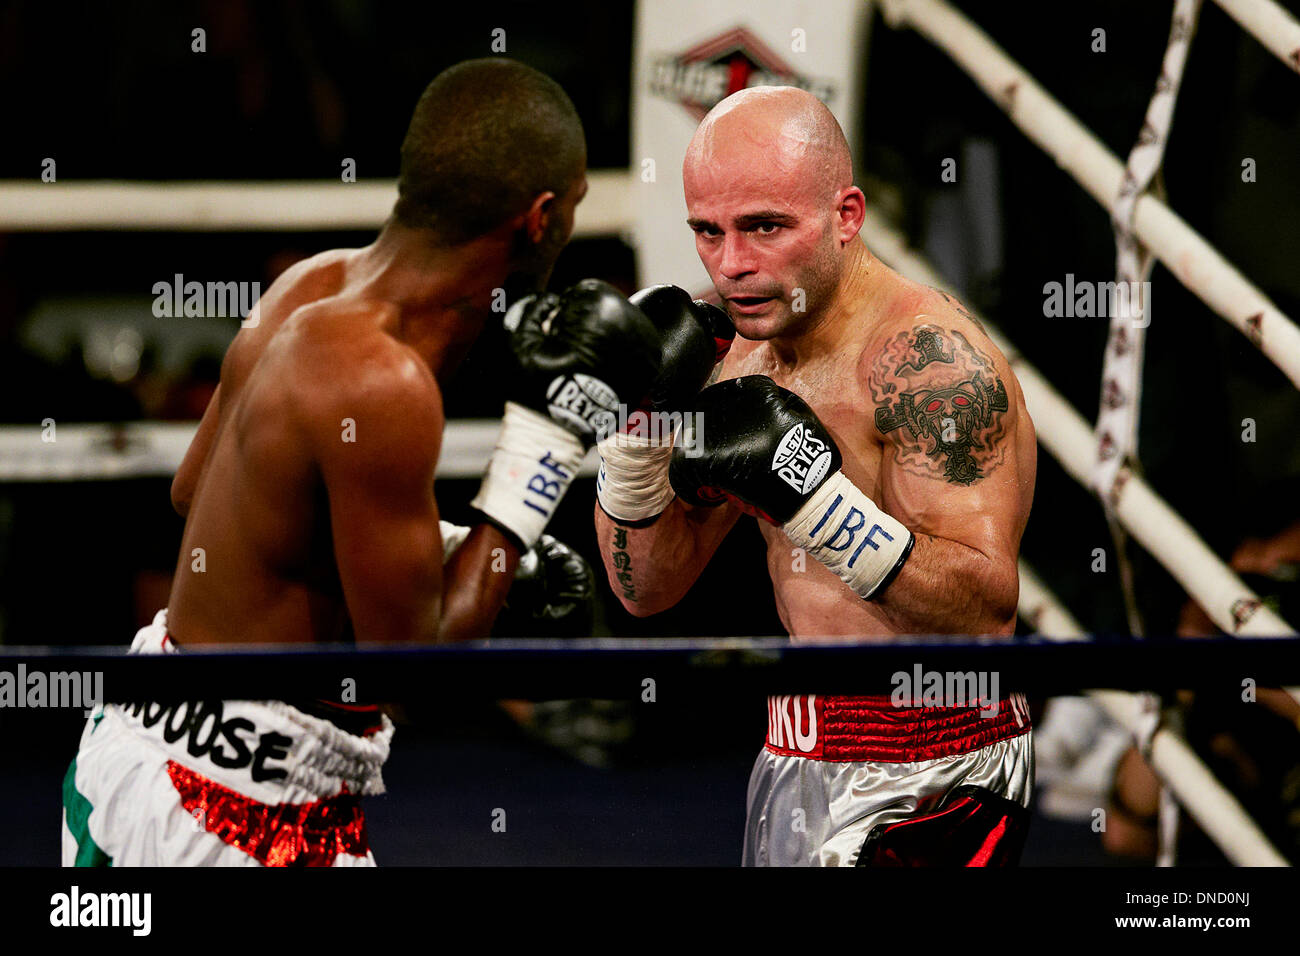 21.12.2013 Elche Spain. Jeffrey Mathebula of Shouth Africa (L) and Kiko Martinez of Spain in action during the Super Bantamweight World championship boxing title fight between Kiko Martínez of Spain and Jeffrey Mathebula of Shouth Africa at the Esperanza Lag Arena, Elche Stock Photo